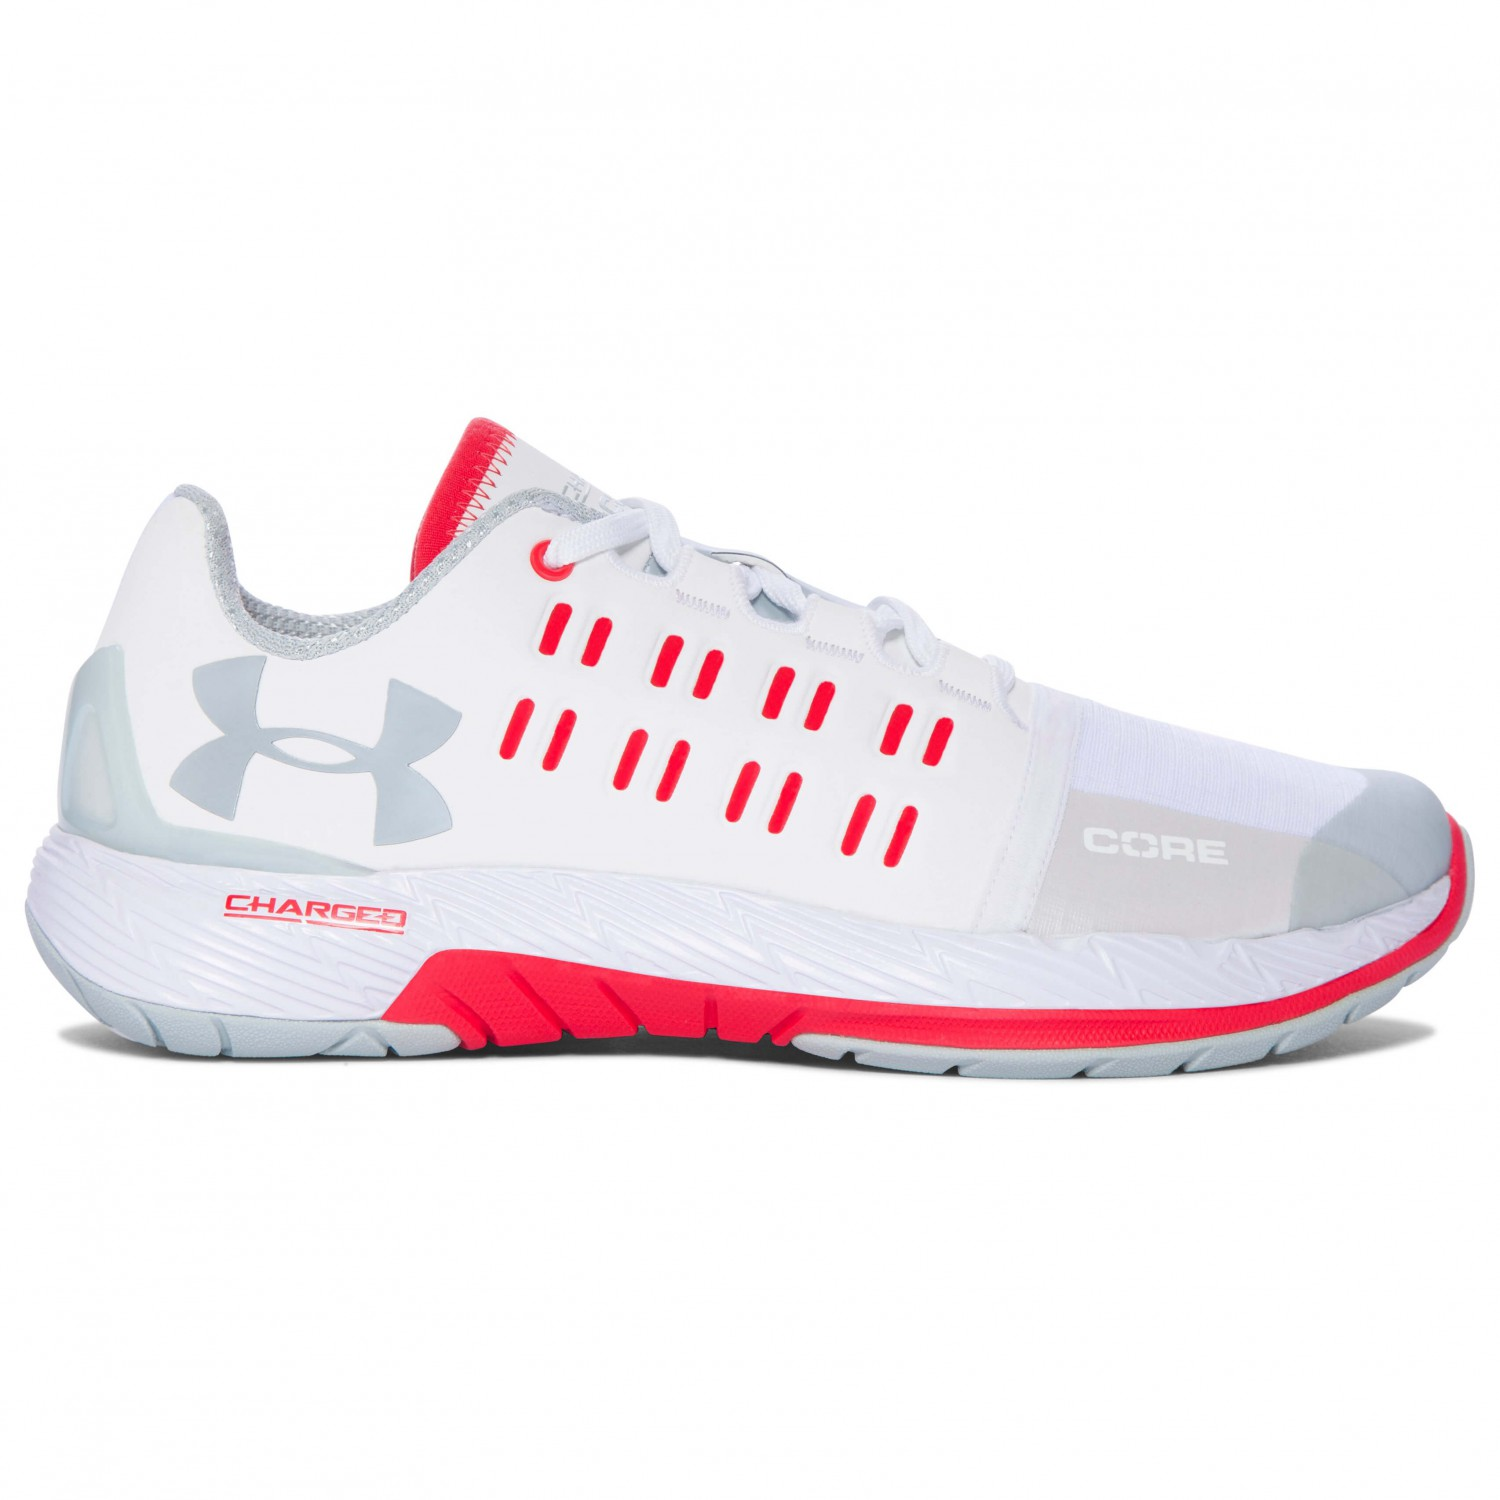 6b7489d0 Under Armour - Women's UA Charged Core - Fitness shoes - White /  Pomegranate | 7,5 (US)